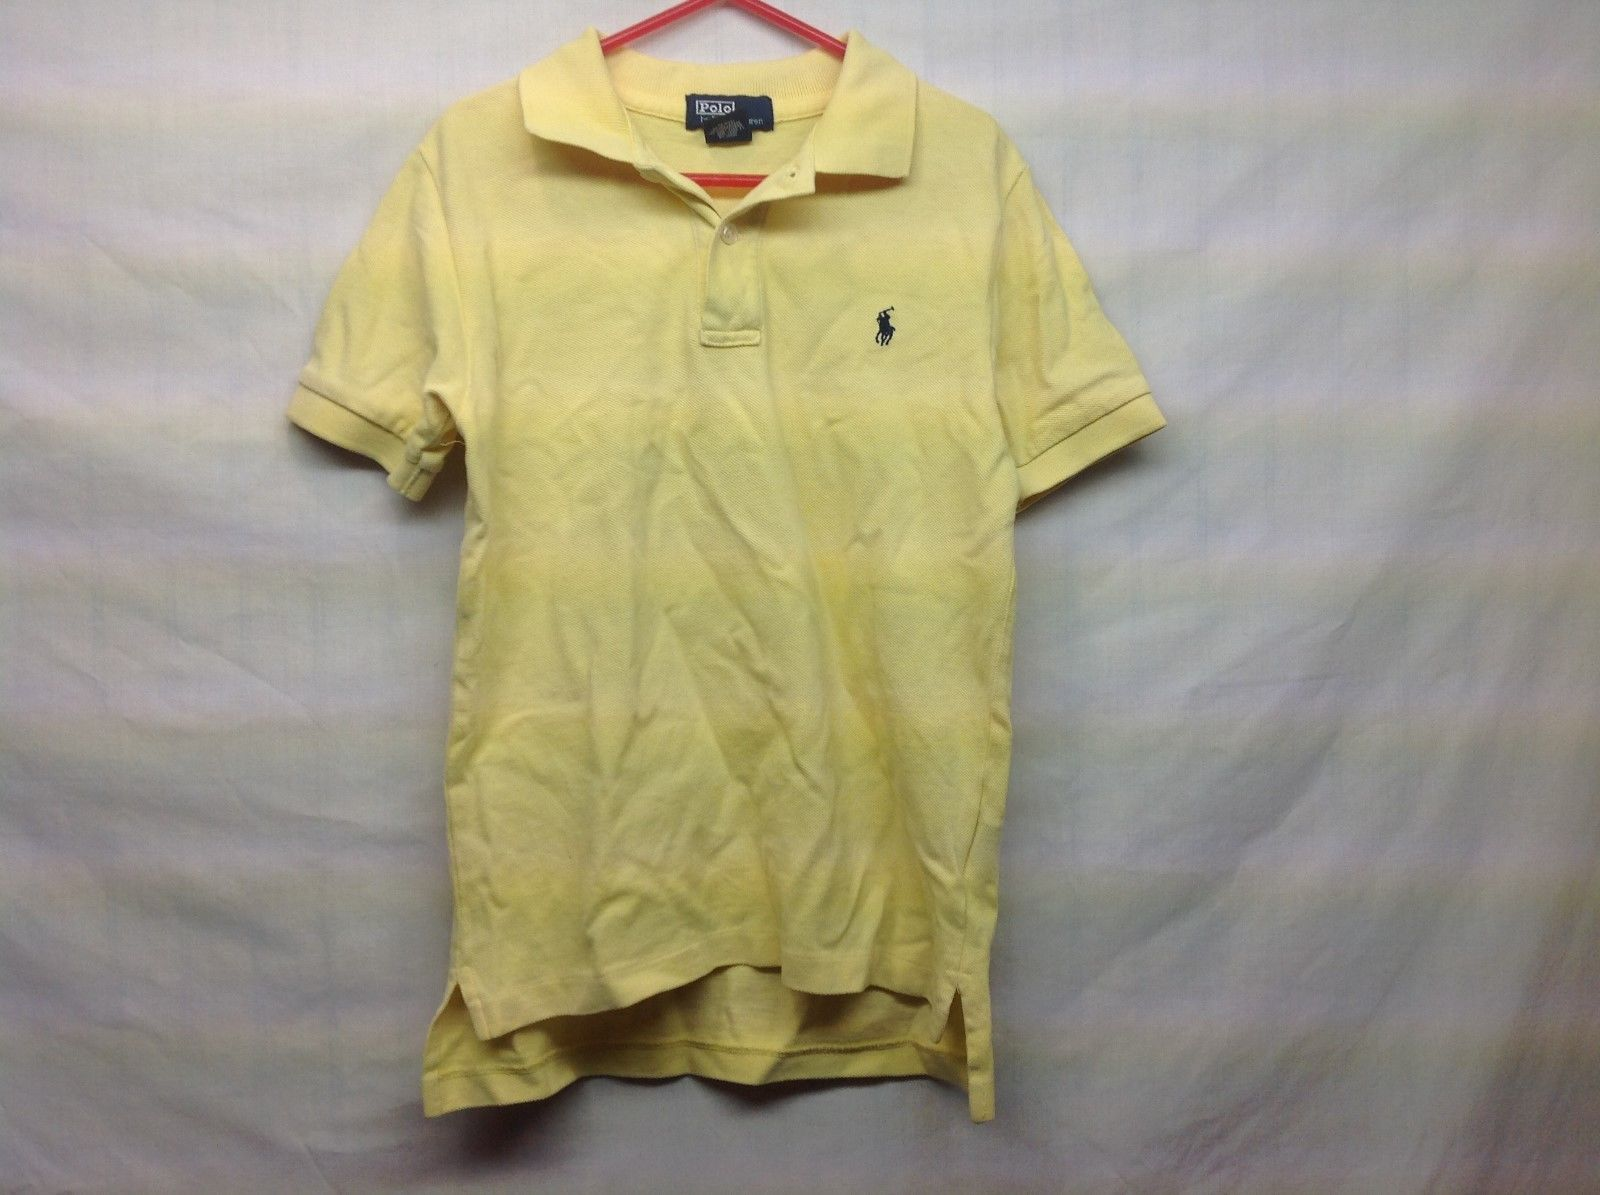 POLO by Ralph Lauren Boys Yellow POLO Shirt Sz 7